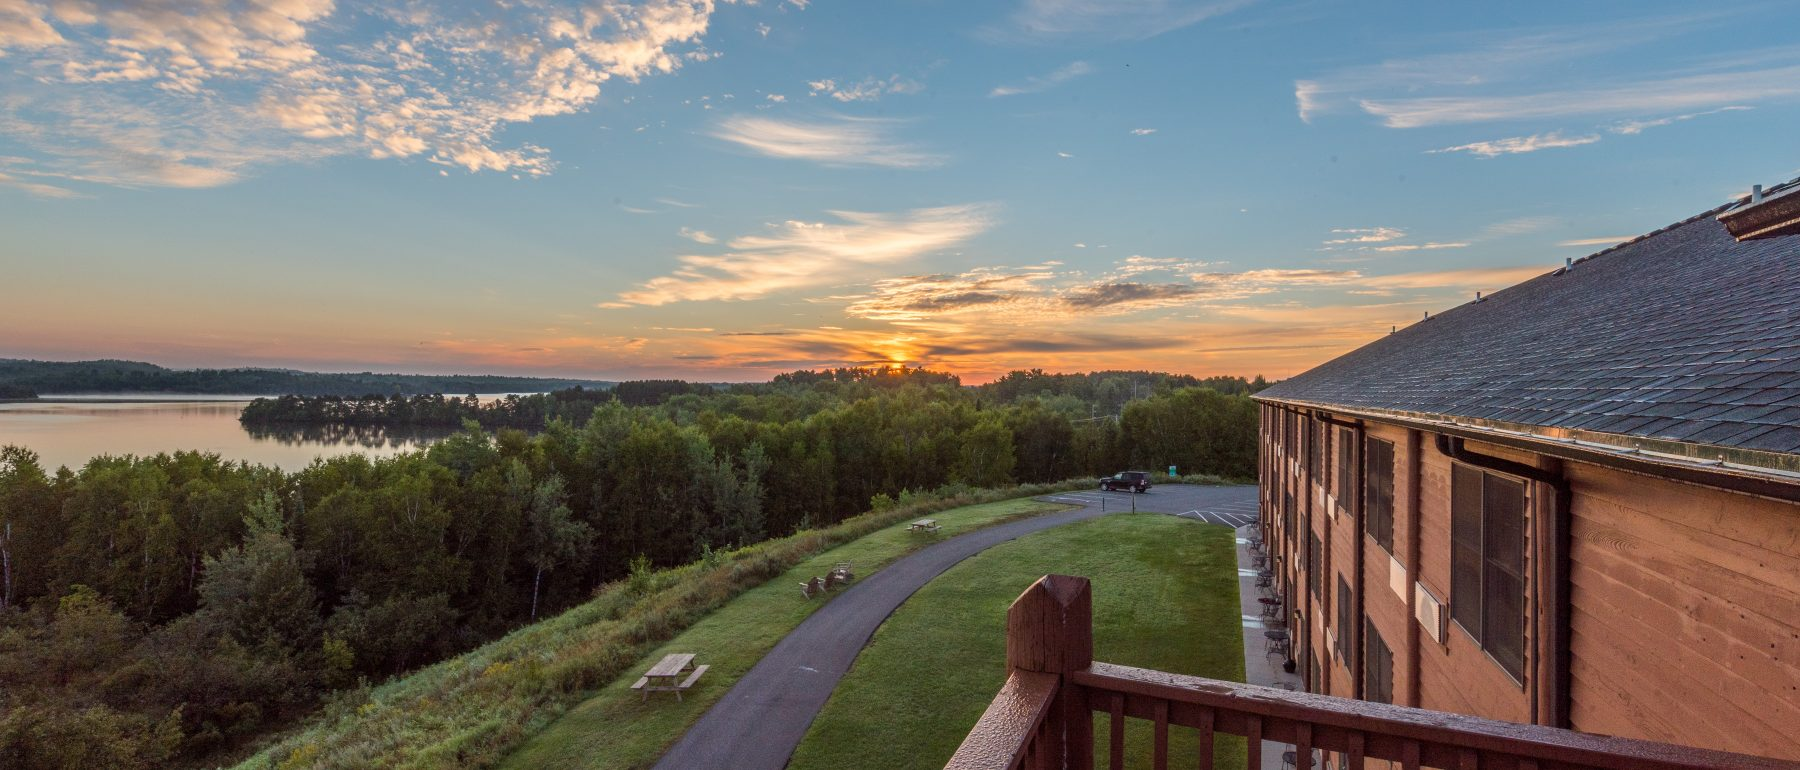 views of Ely Minnesota from balcony of Grand Ely Lodge